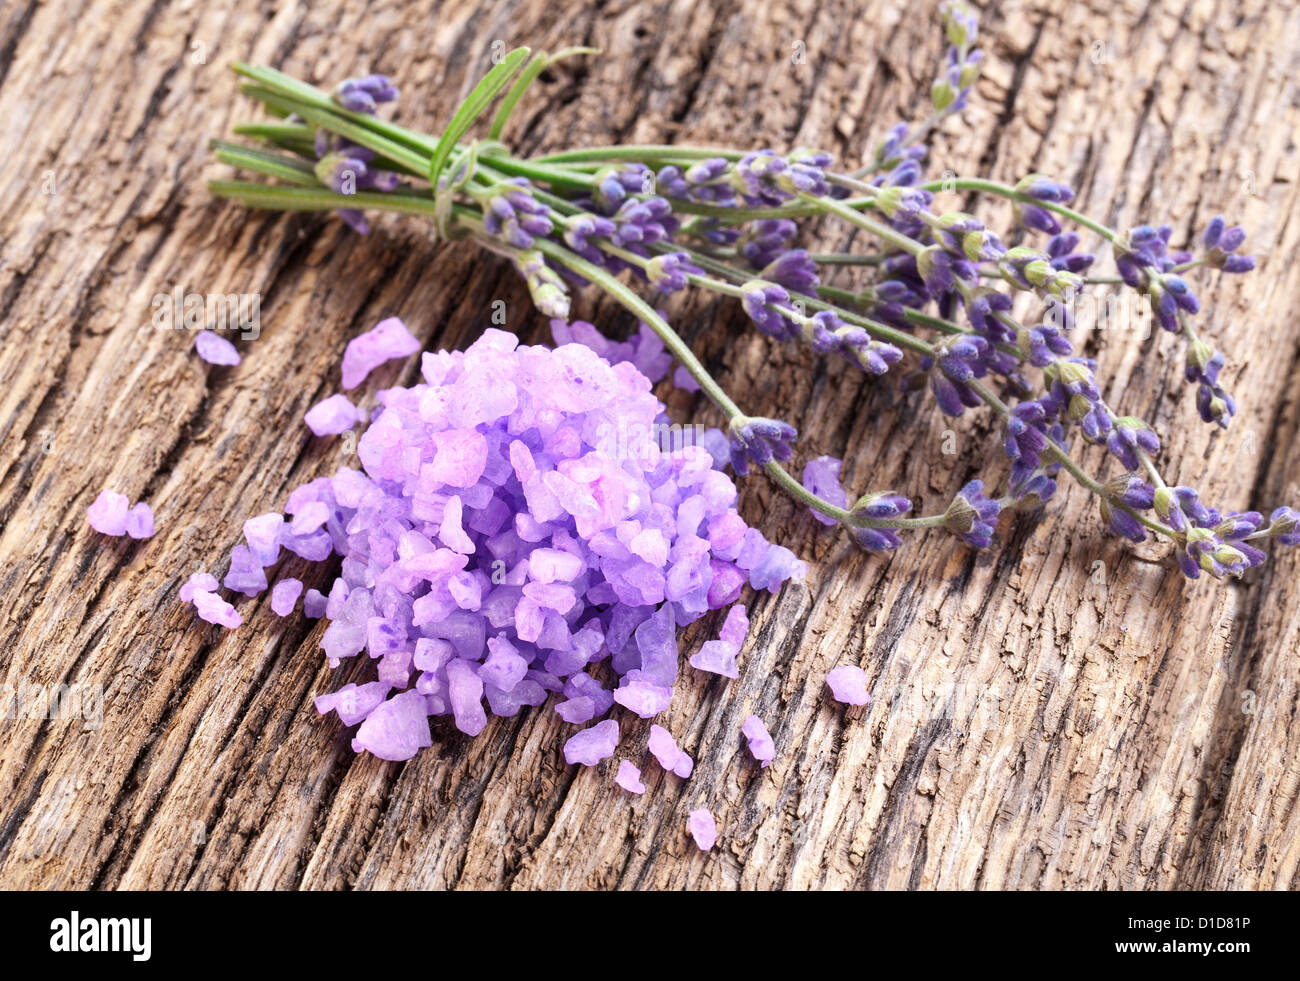 Bunch of lavender, and sea salt on a wooden table. - Stock Image